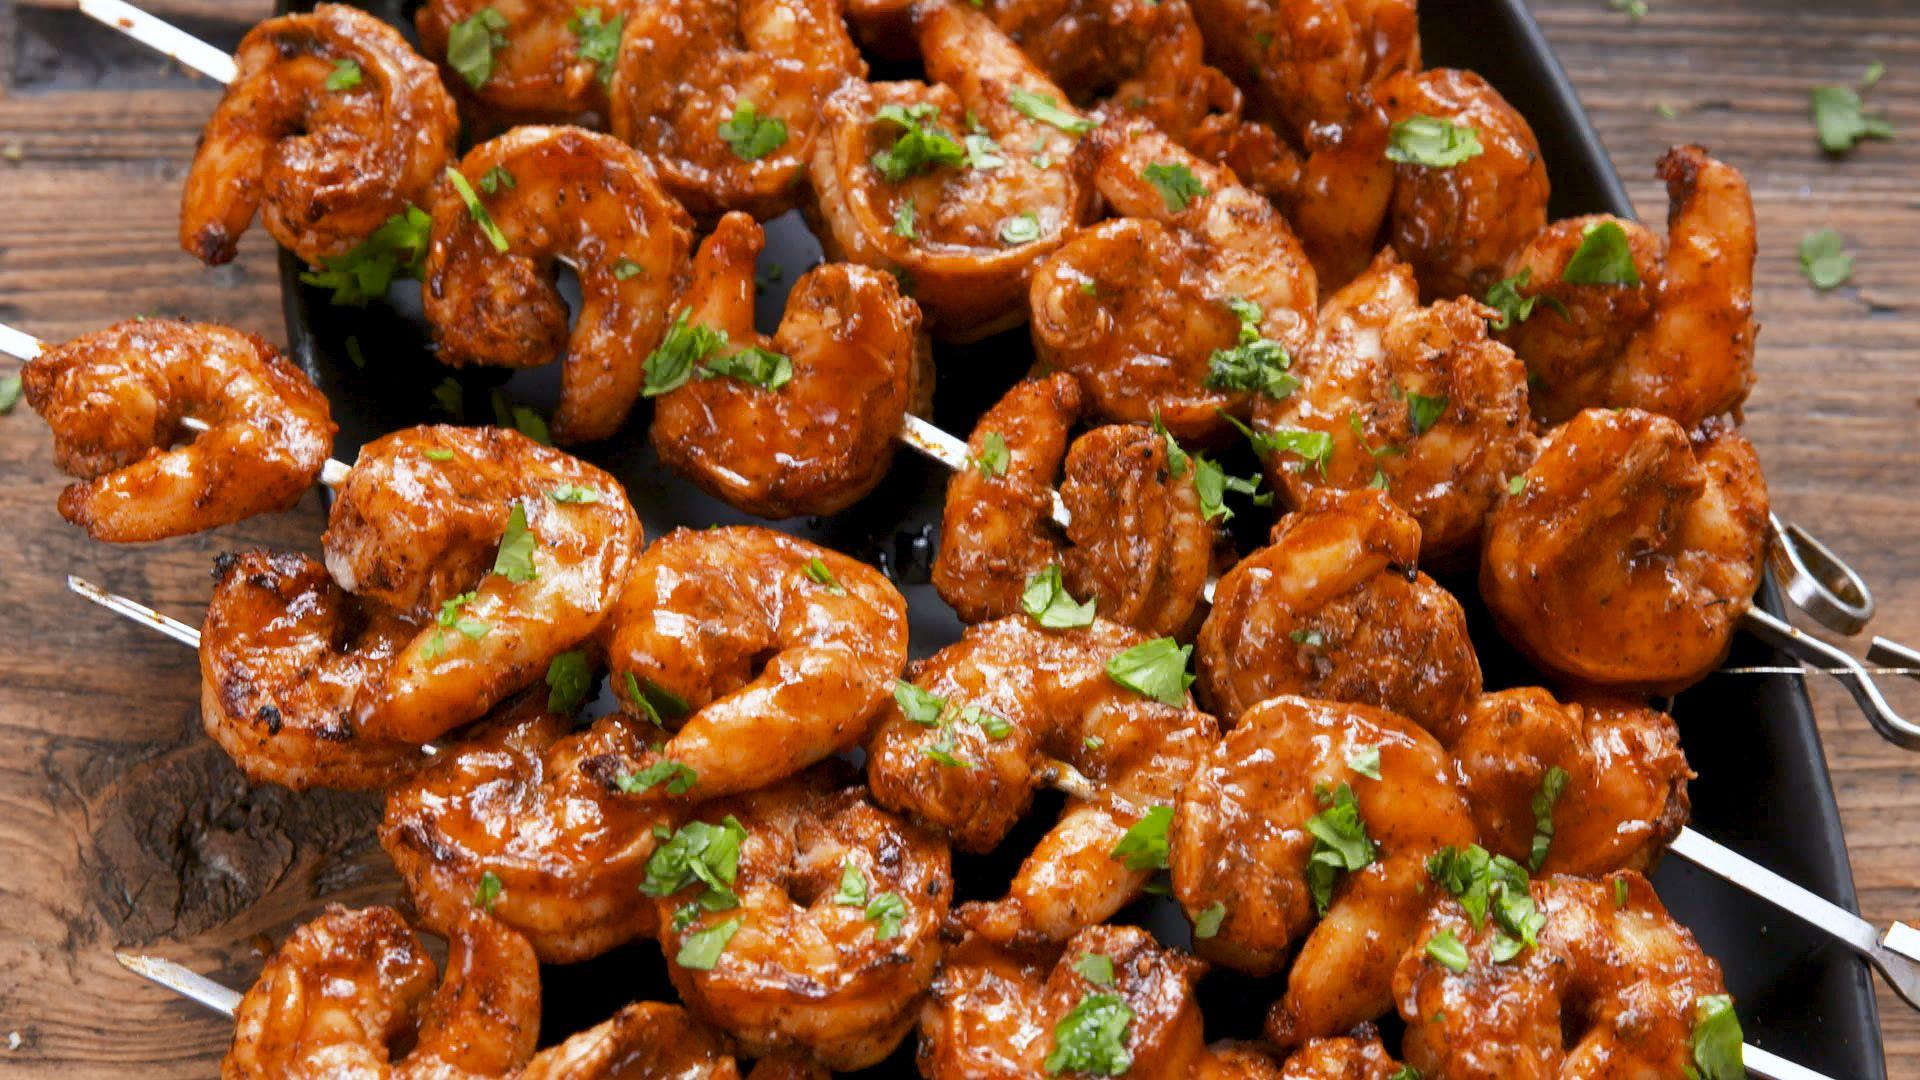 """<p>These shrimp recipes are easy enough for a <a href=""""https://www.delish.com/cooking/menus/g1478/quick-dinner-ideas/"""" rel=""""nofollow noopener"""" target=""""_blank"""" data-ylk=""""slk:quick weeknight dinner"""" class=""""link rapid-noclick-resp"""">quick weeknight dinner</a>, delish enough for date night, and fun enough for a <a href=""""https://www.delish.com/entertaining/g3356/summer-holiday-cookout-menus/"""" rel=""""nofollow noopener"""" target=""""_blank"""" data-ylk=""""slk:summer cookout"""" class=""""link rapid-noclick-resp"""">summer cookout</a>. And if you're trying to eat clean, these <a href=""""https://www.delish.com/cooking/recipe-ideas/g3235/healthy-shrimp-recipes/"""" rel=""""nofollow noopener"""" target=""""_blank"""" data-ylk=""""slk:healthy shrimp recipes"""" class=""""link rapid-noclick-resp"""">healthy shrimp recipes</a> will help you out.</p>"""